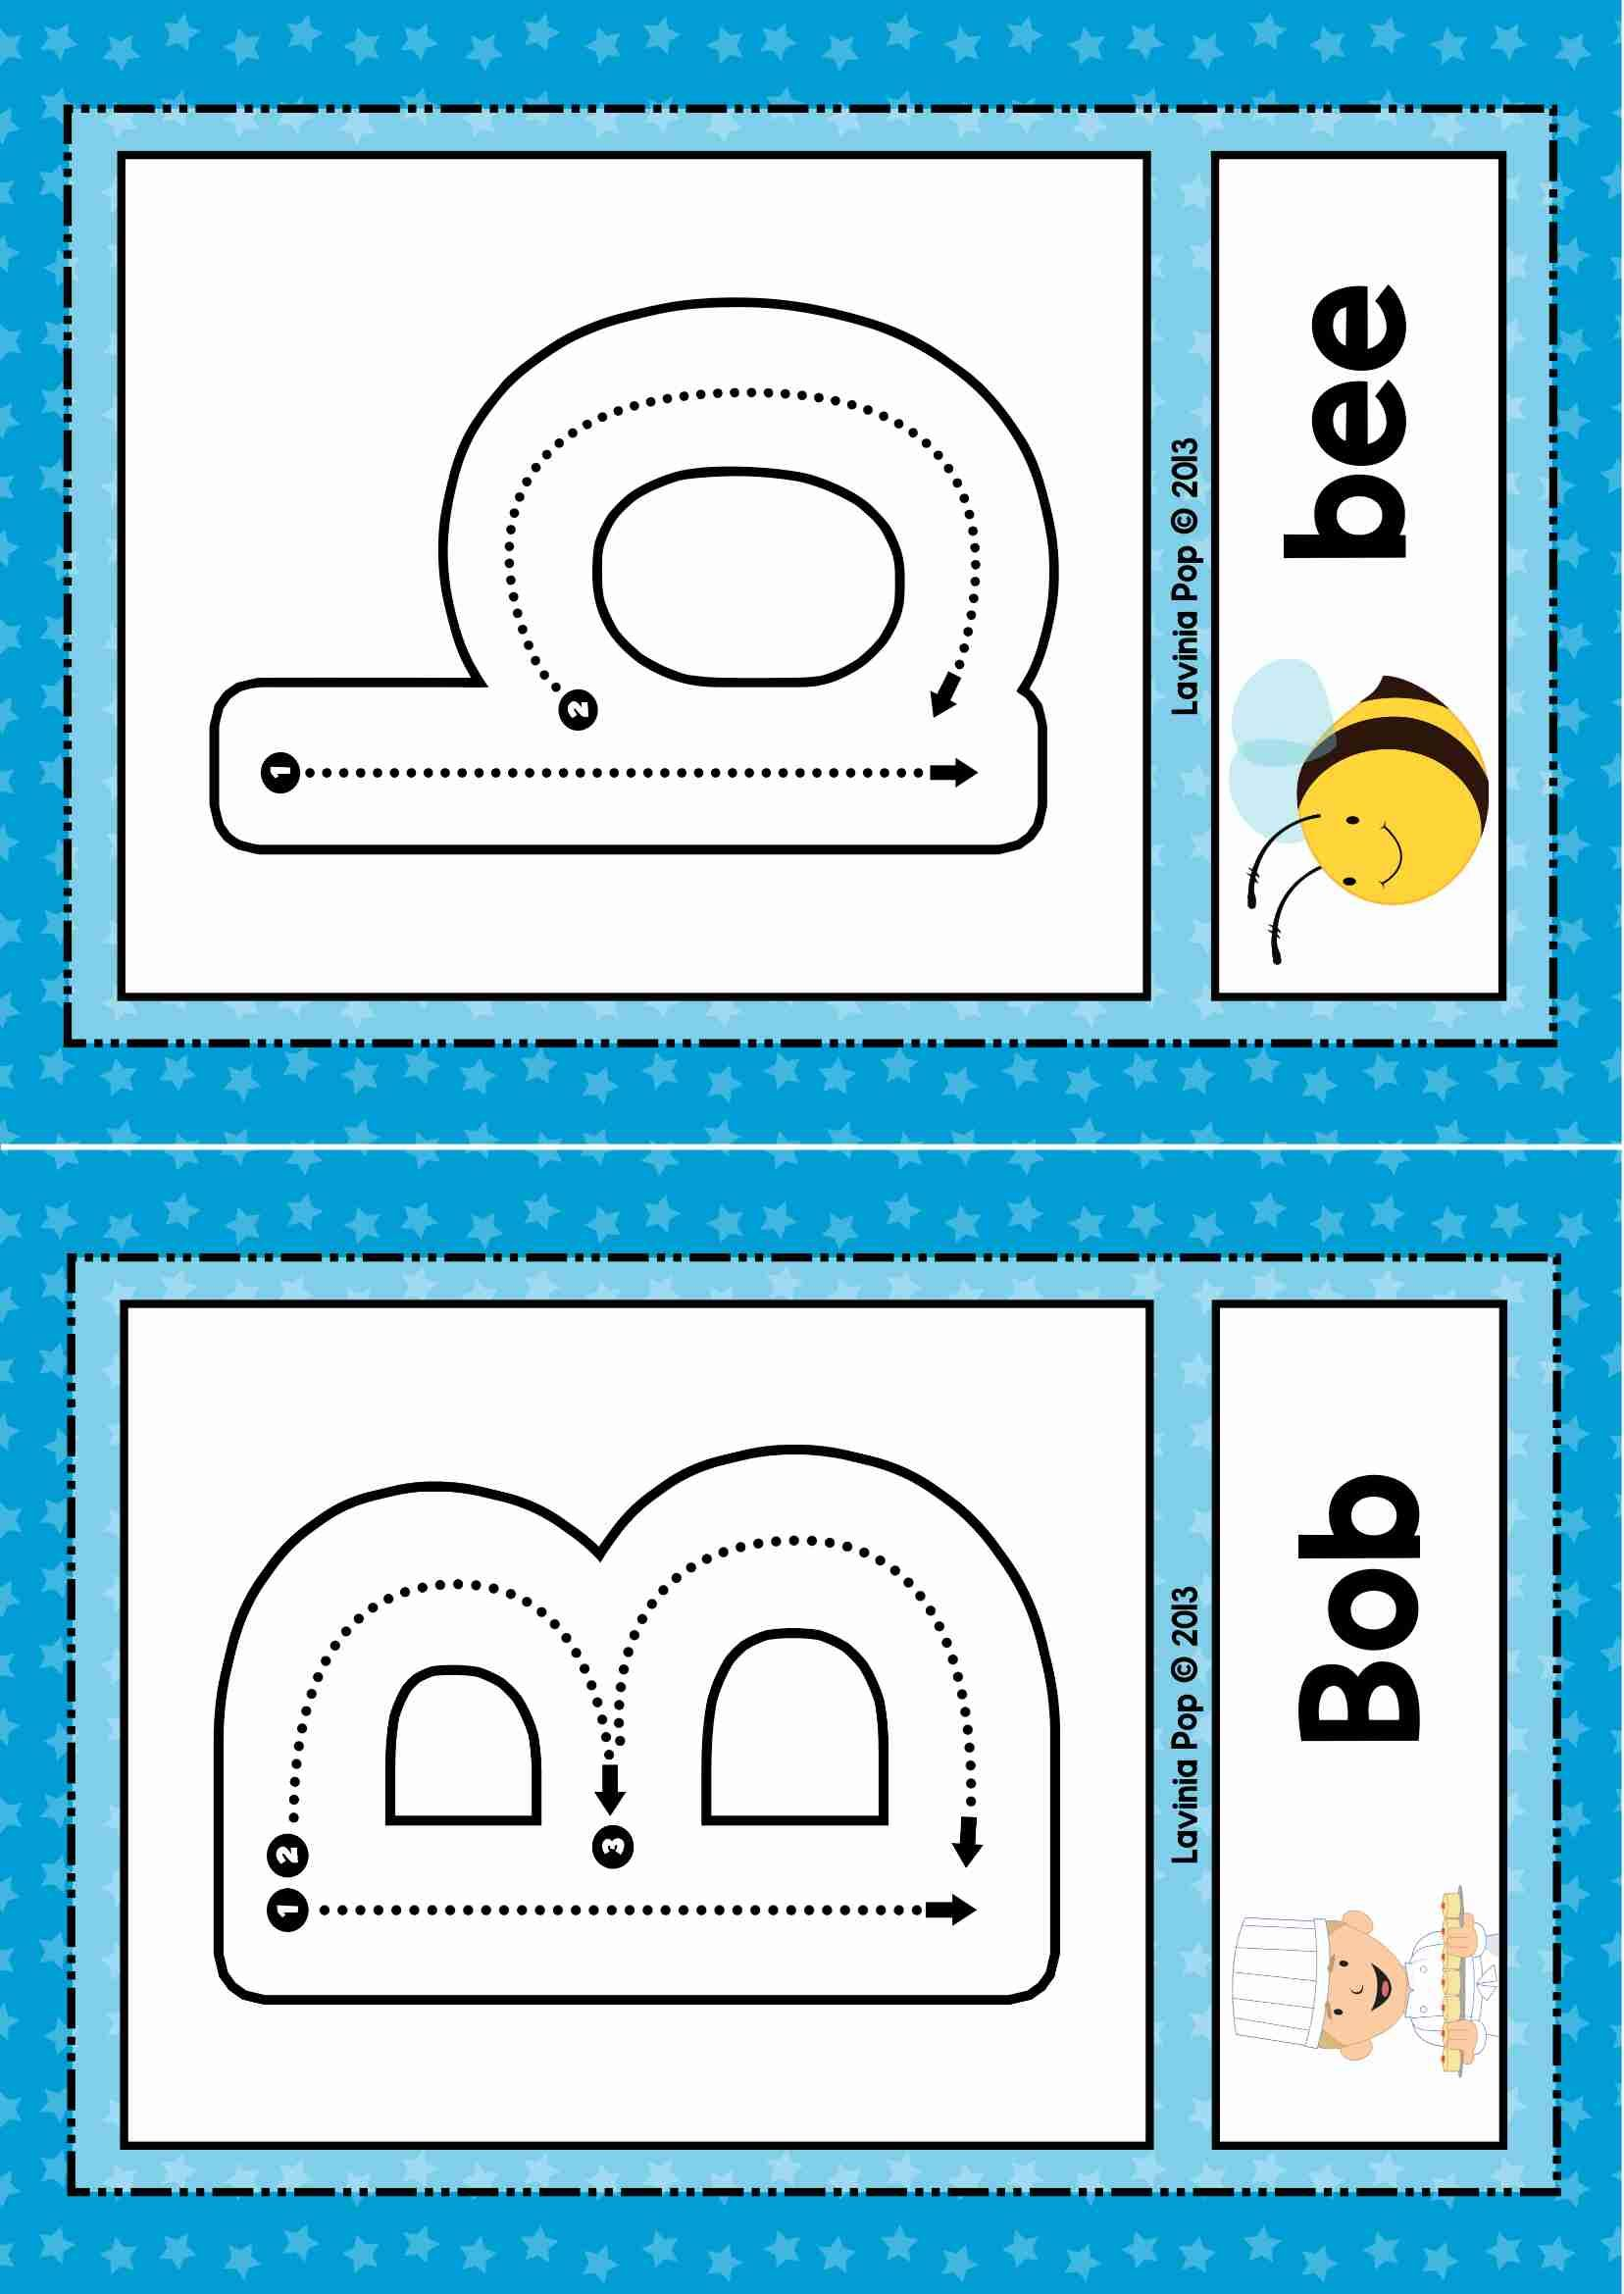 Free Phonics Letter Of The Week B Alphabet Flash Cards Or Play Dough Mats With Correct Letter